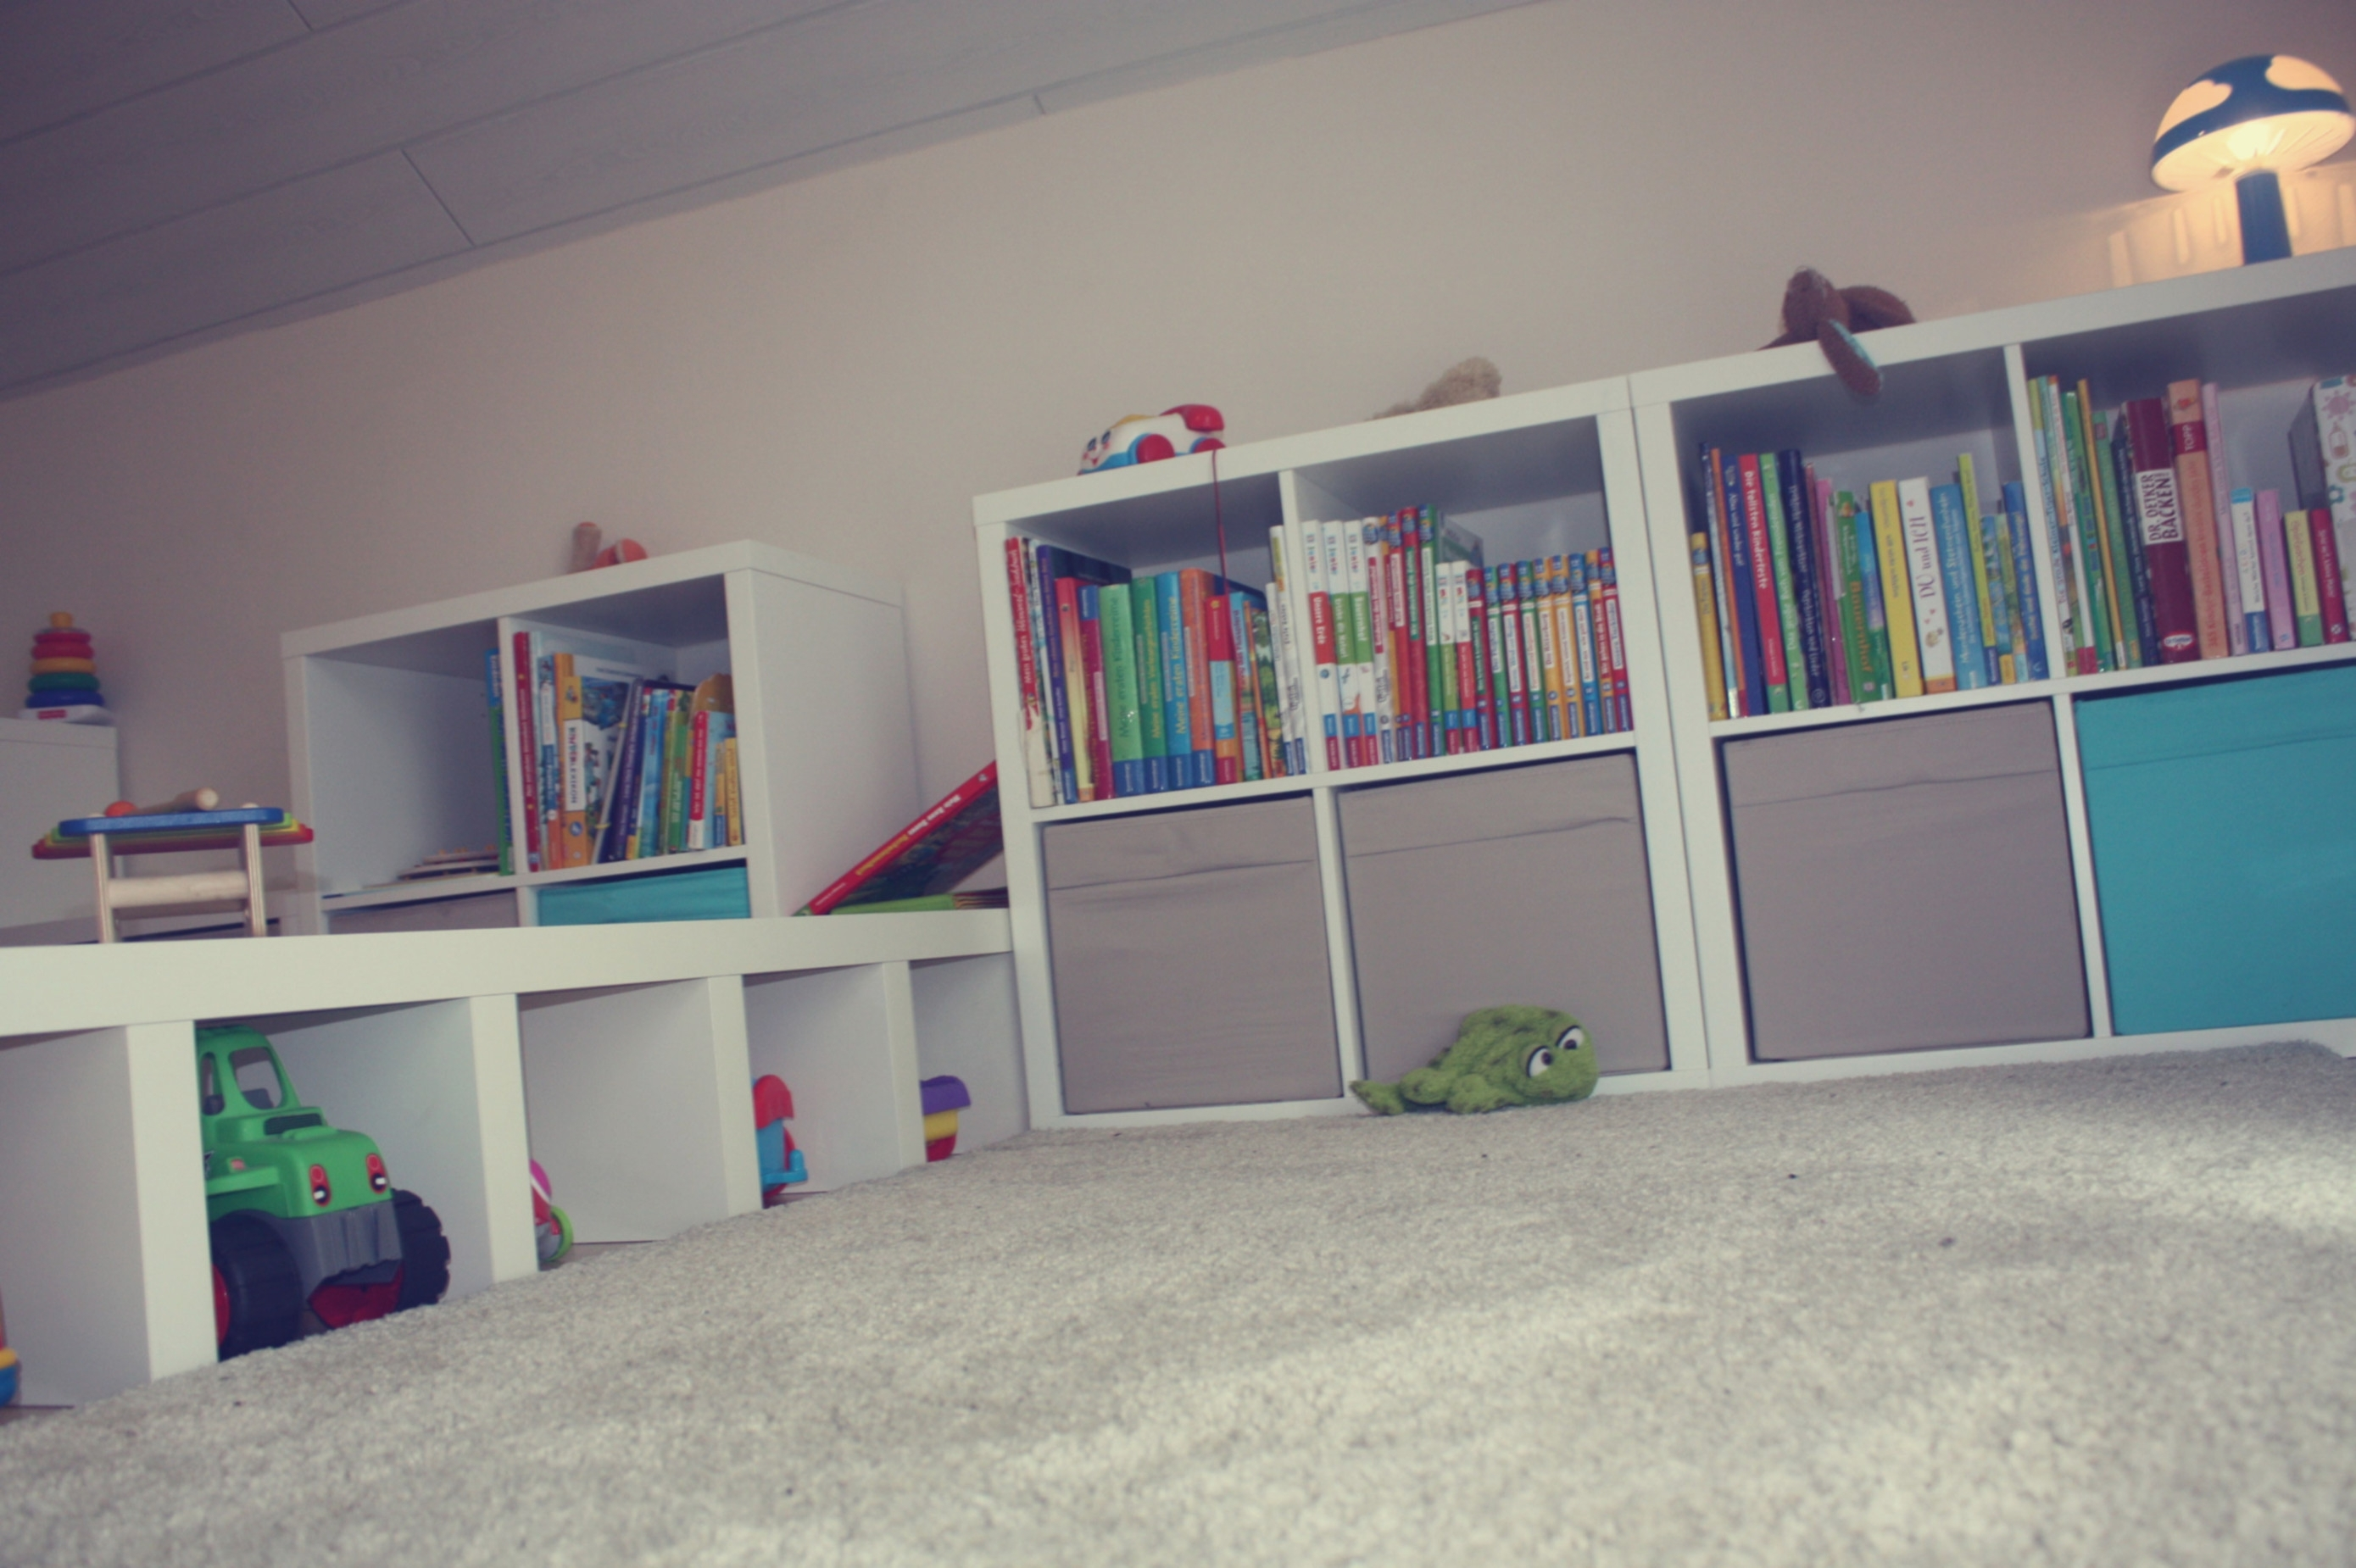 30 Fantastisch Ikea Kinderzimmer Bücherregal